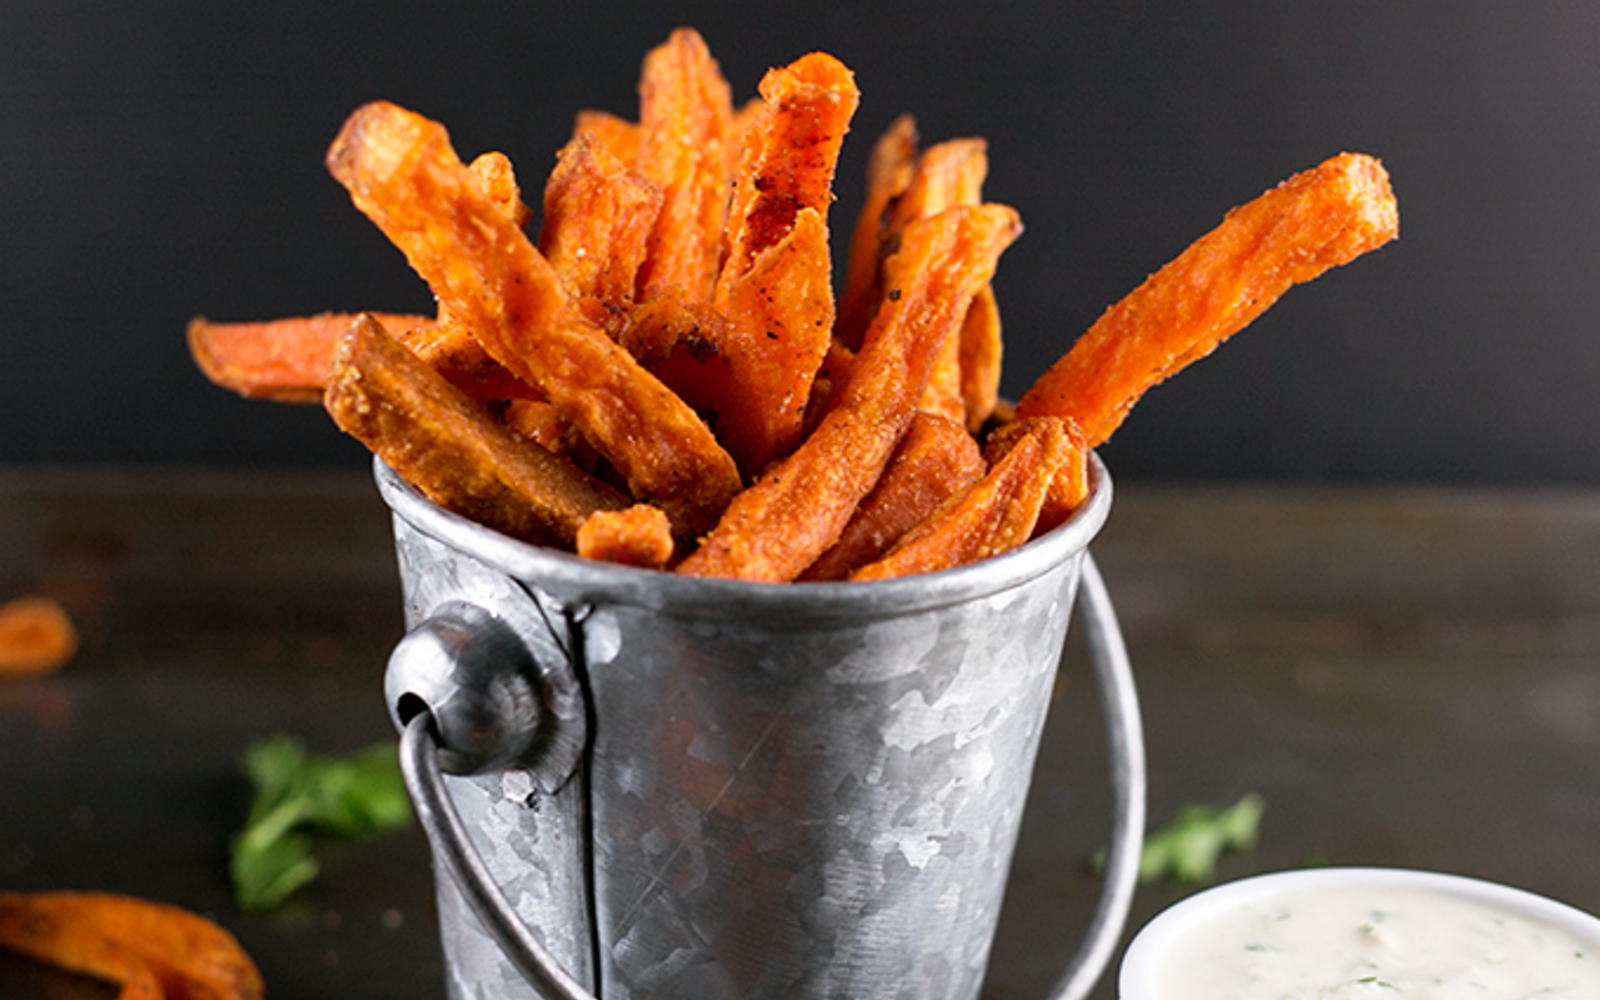 Vegan Indian Spiced Sweet Potato Fries With Parsley Cashew Dip